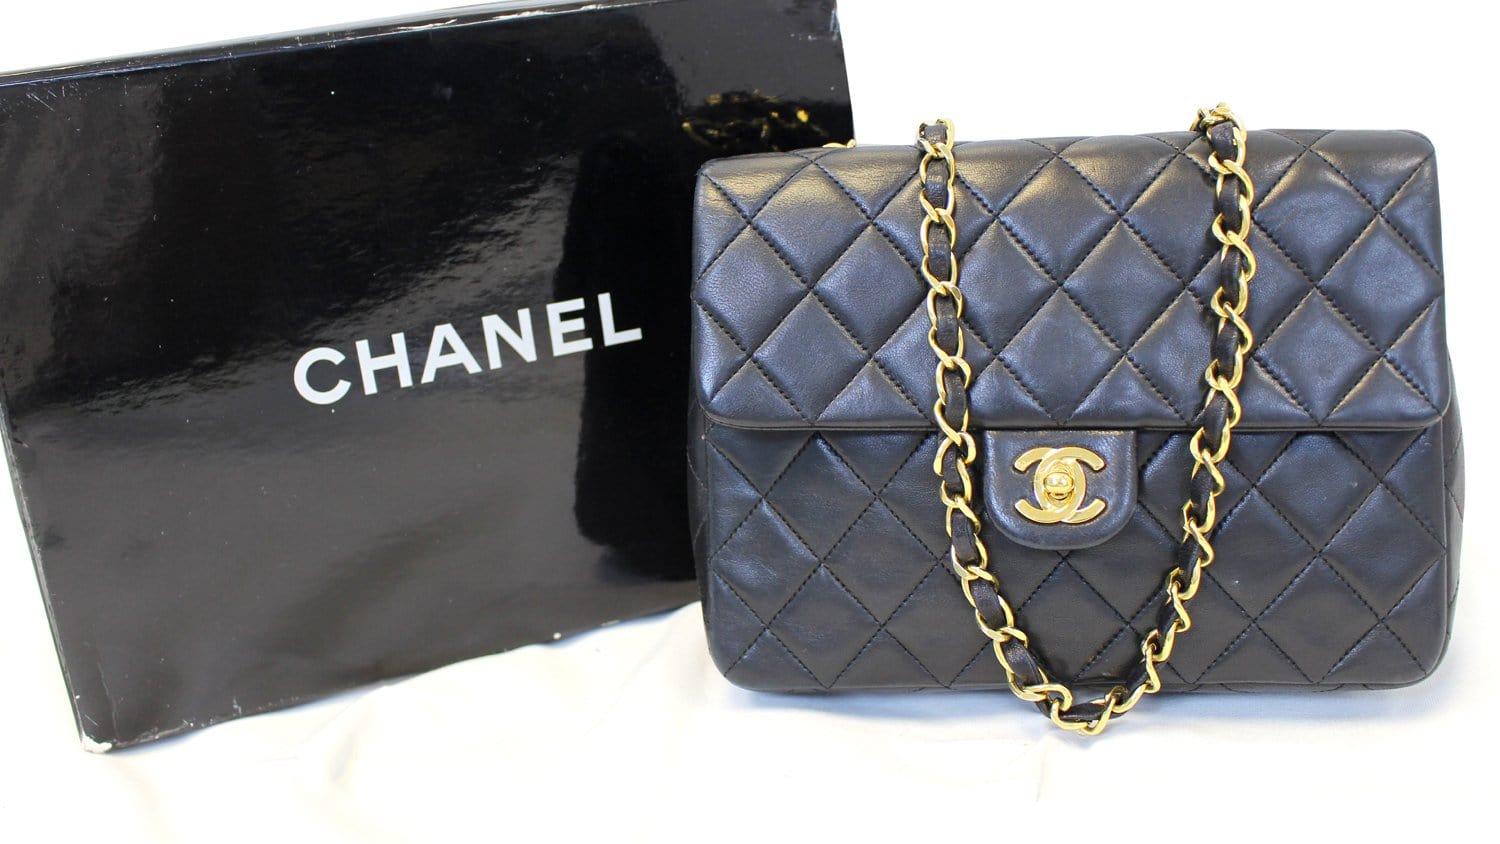 424a965e8ffc97 CHANEL Black Leather CC Classic Flap Shoulder Crossbody Bag